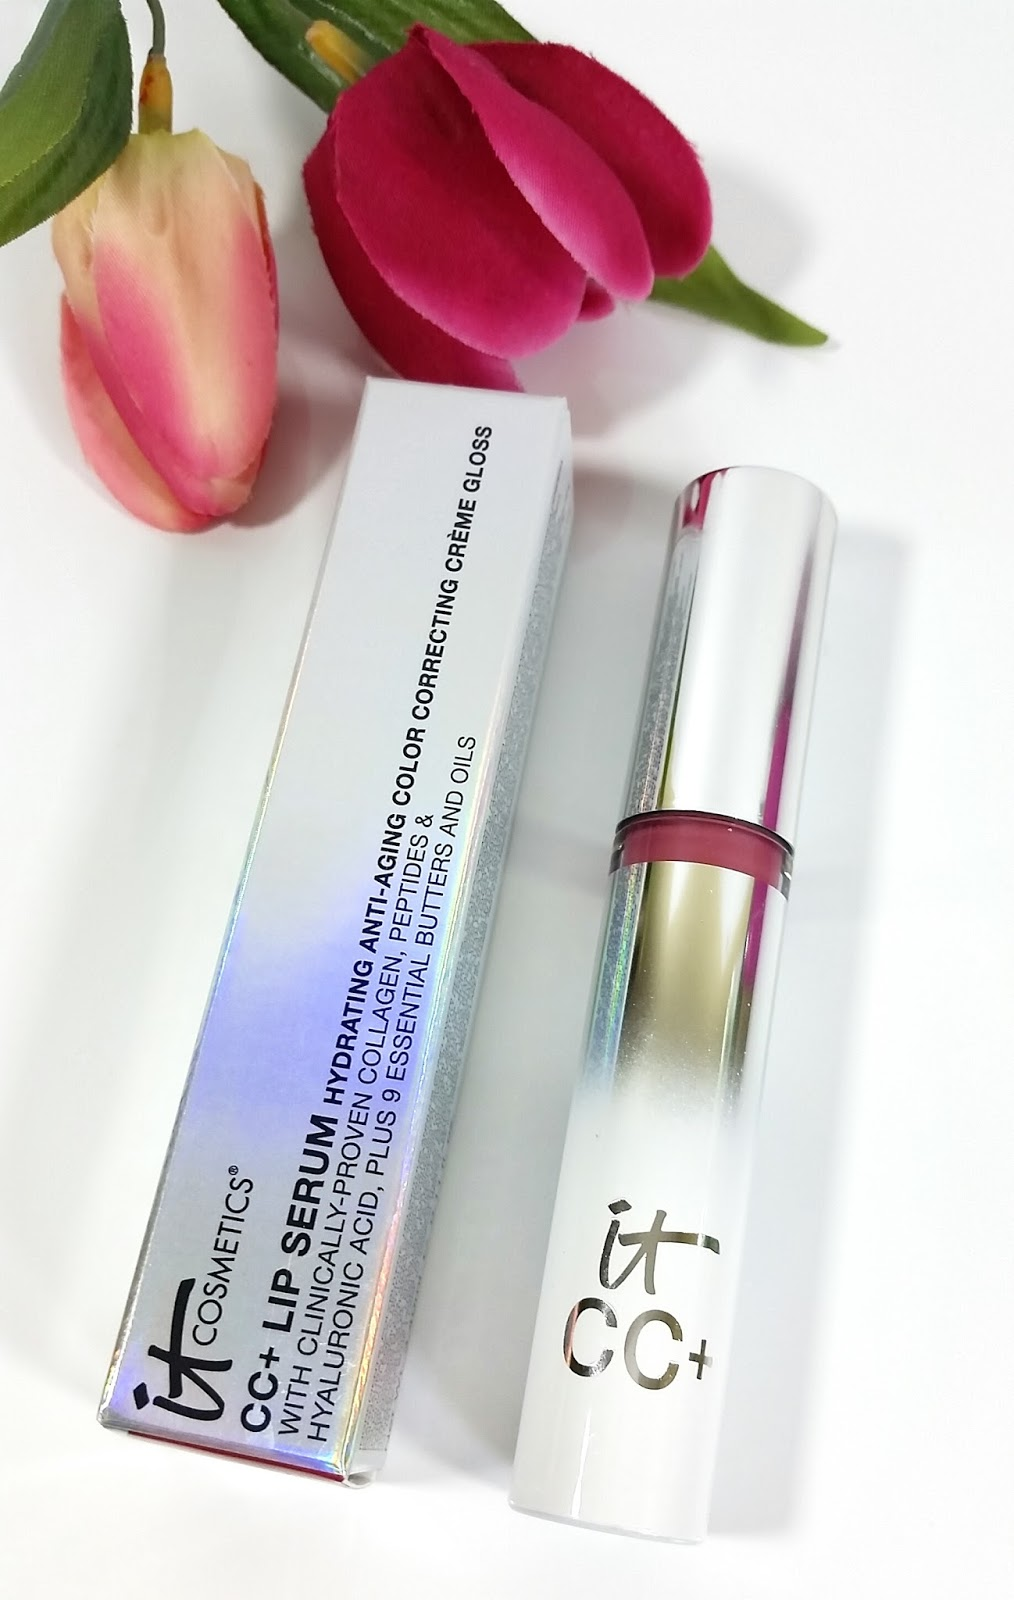 CC+ Lip Serum Hydrating Anti-Aging Color Correcting Creme Gloss by IT Cosmetics #11